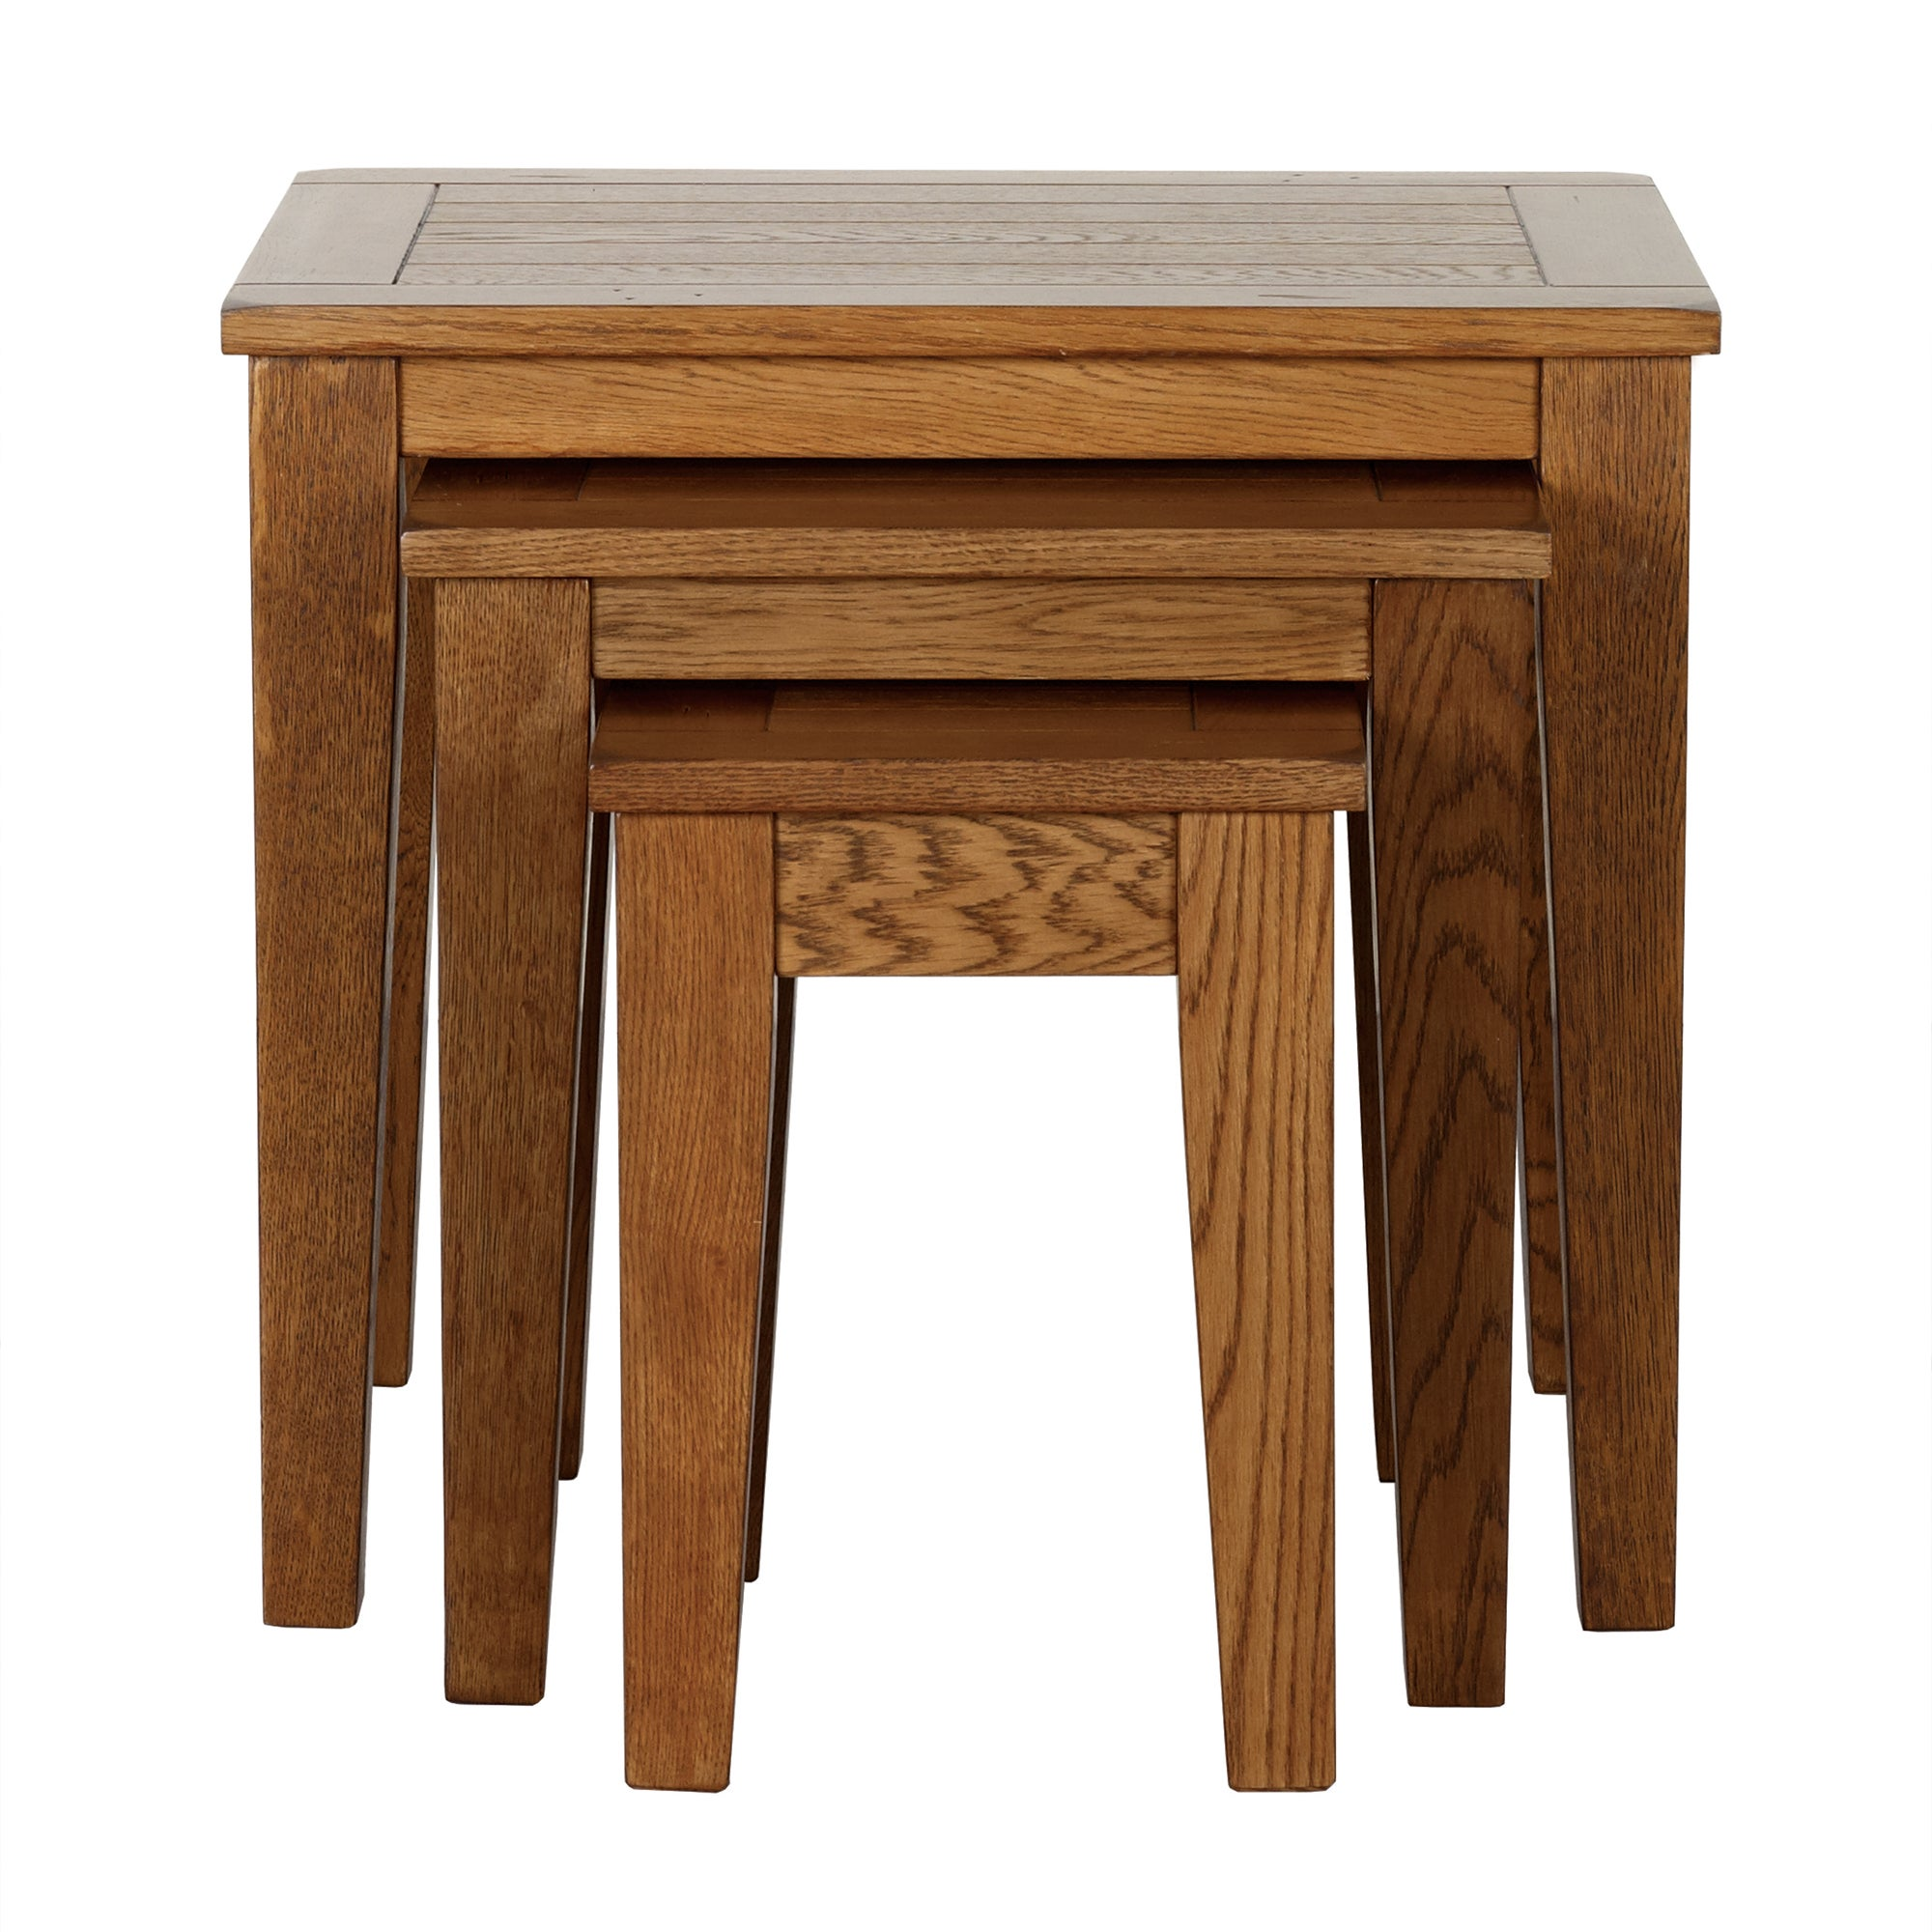 Stamford Rustic Oak Nest of Tables